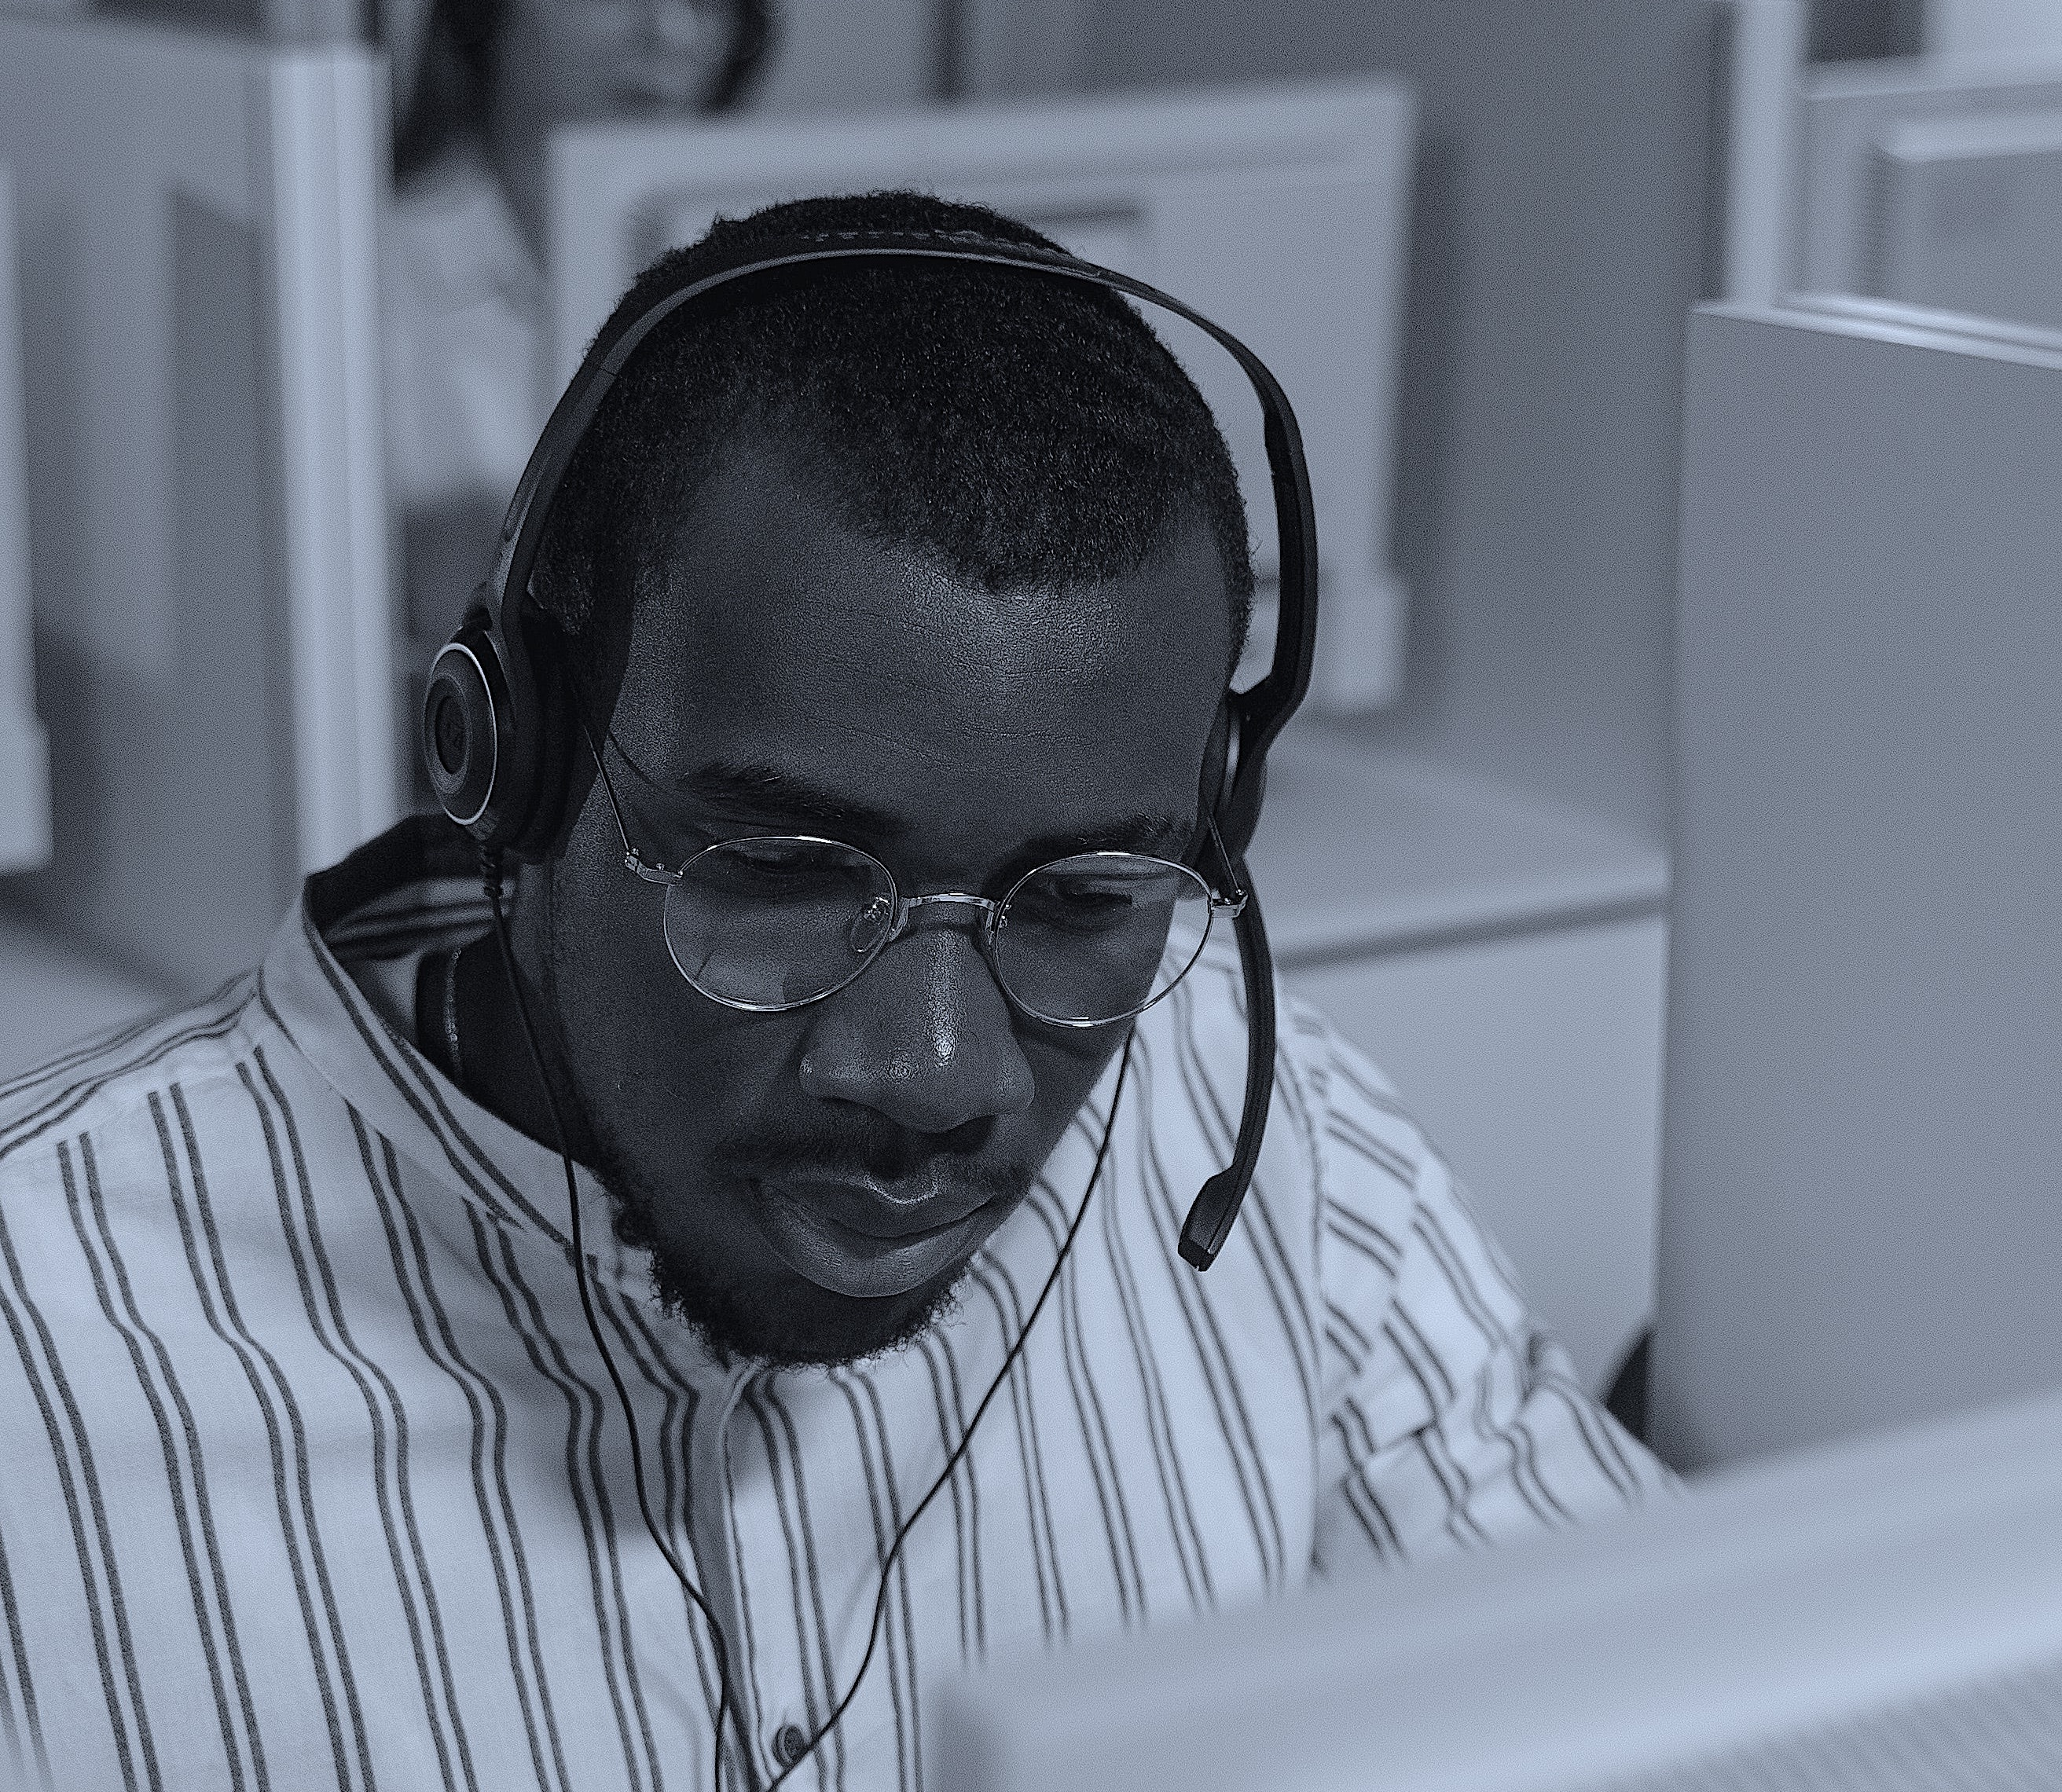 Man with glasses wearing glasses and looking at a computer.